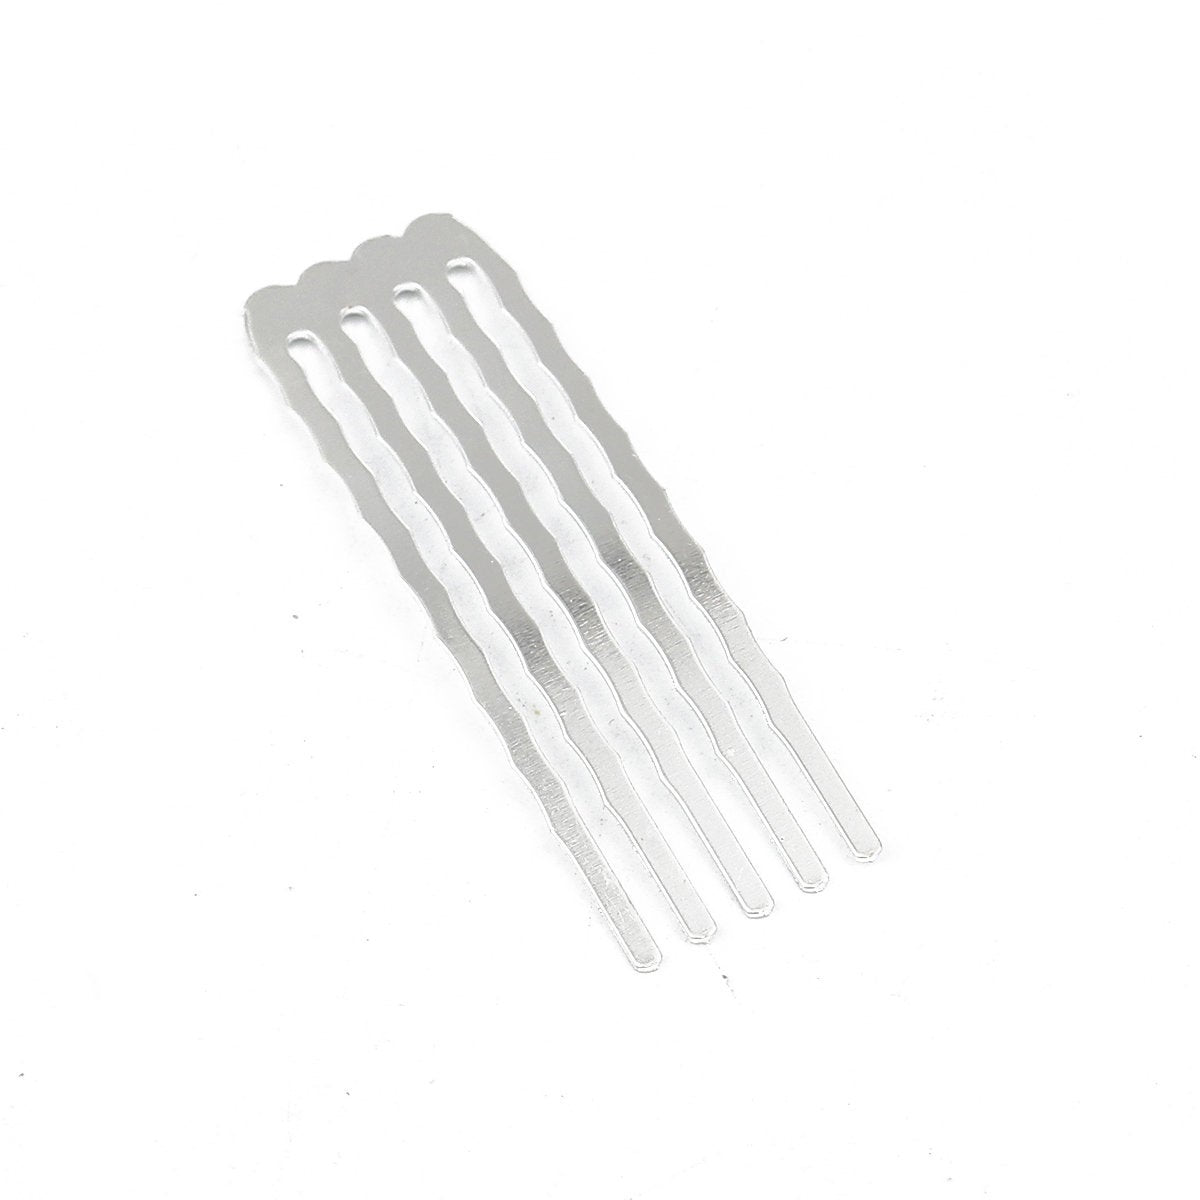 "5 Silver Plated Hair Combs - Nickel Free - Lead Free - Wedding Bridal Comb - 49mm x 15mm (1 7/8"" x 5/8"")"